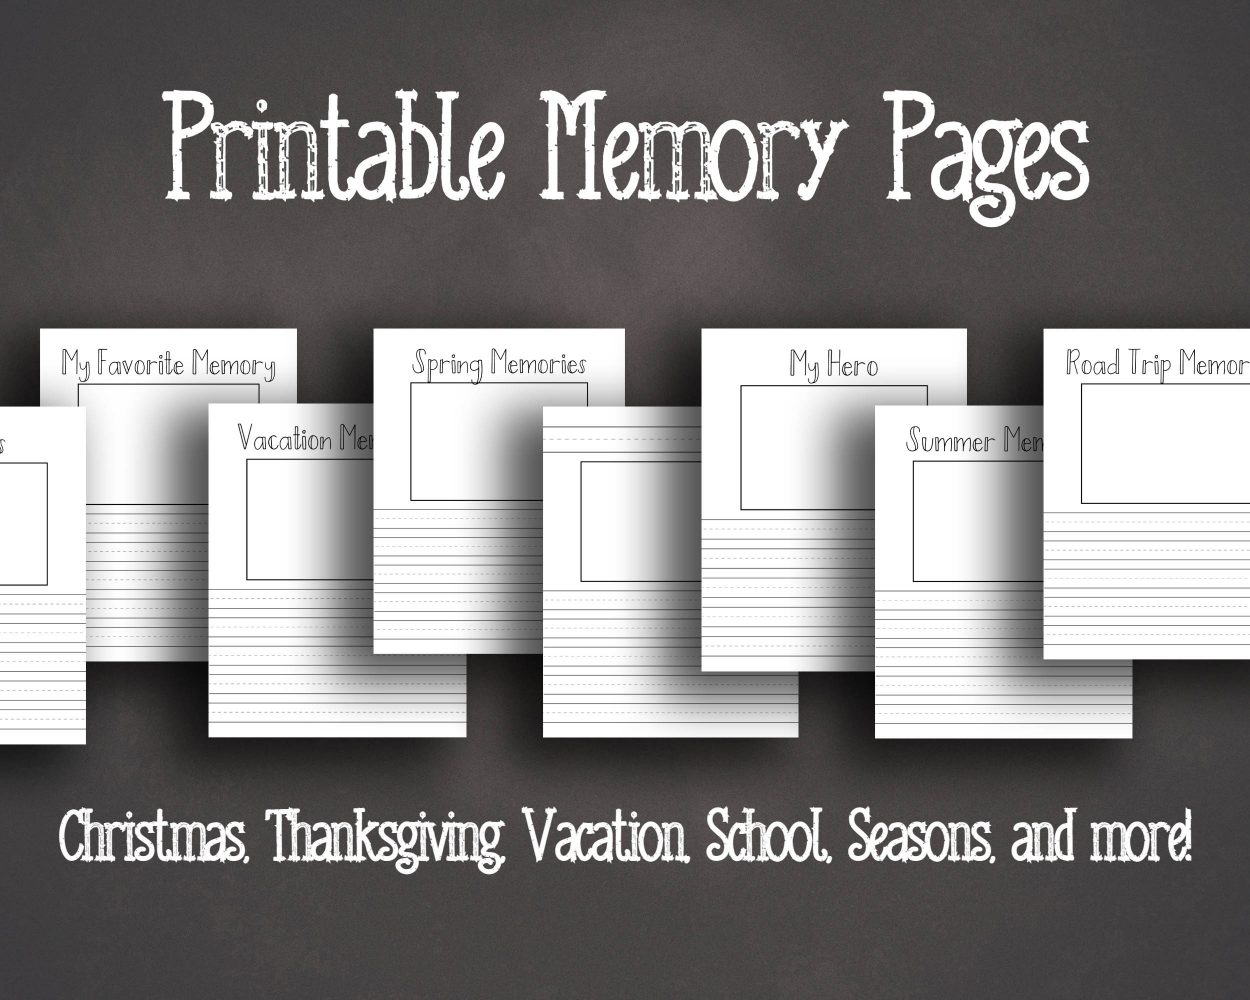 MemoryPages_thumbnail2